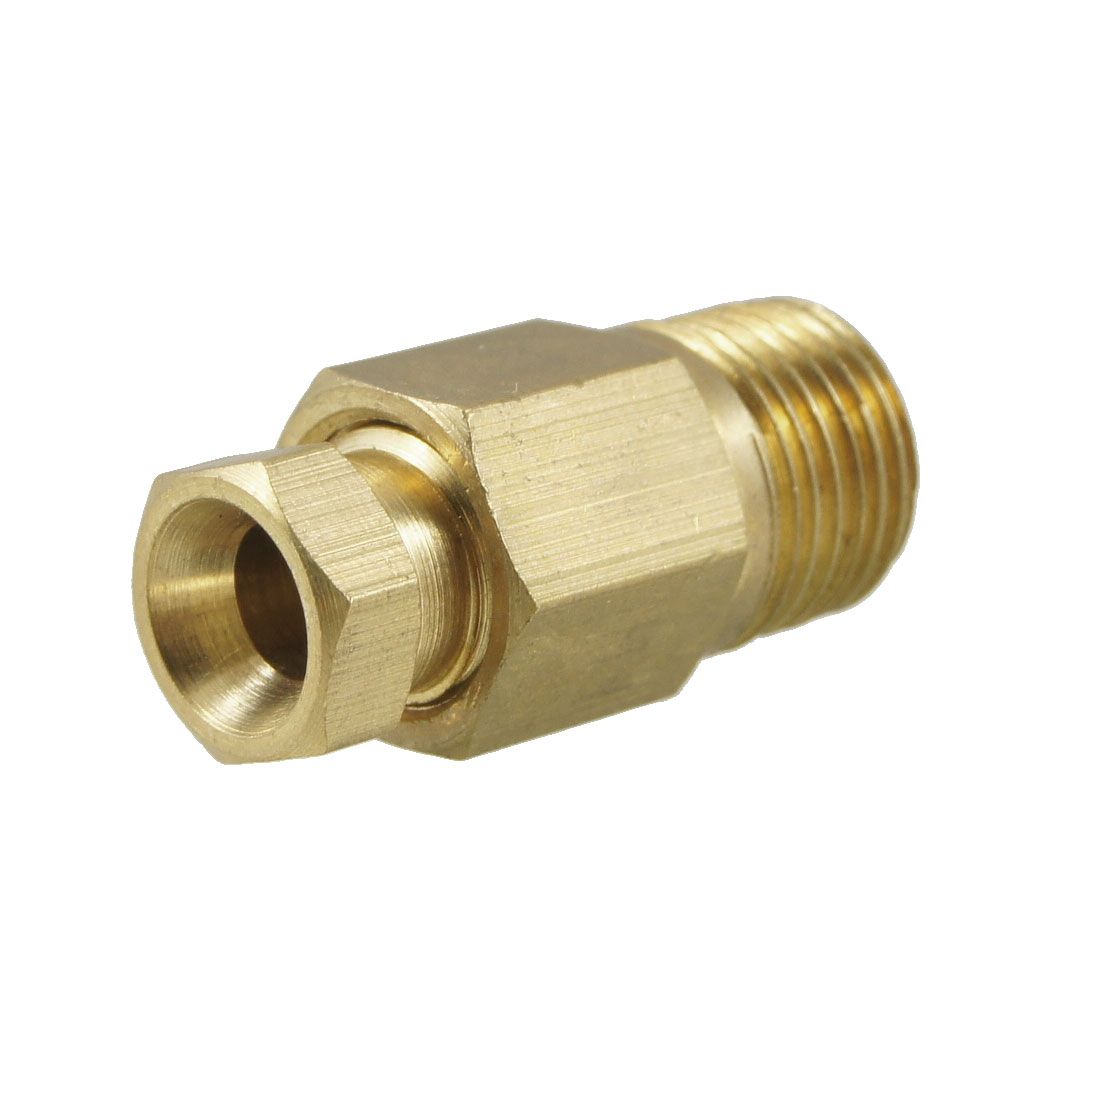 "4mm Hole Dia 1/8"" Male Thread Brass Straight Hydraulic Grease Nipple Fitting"